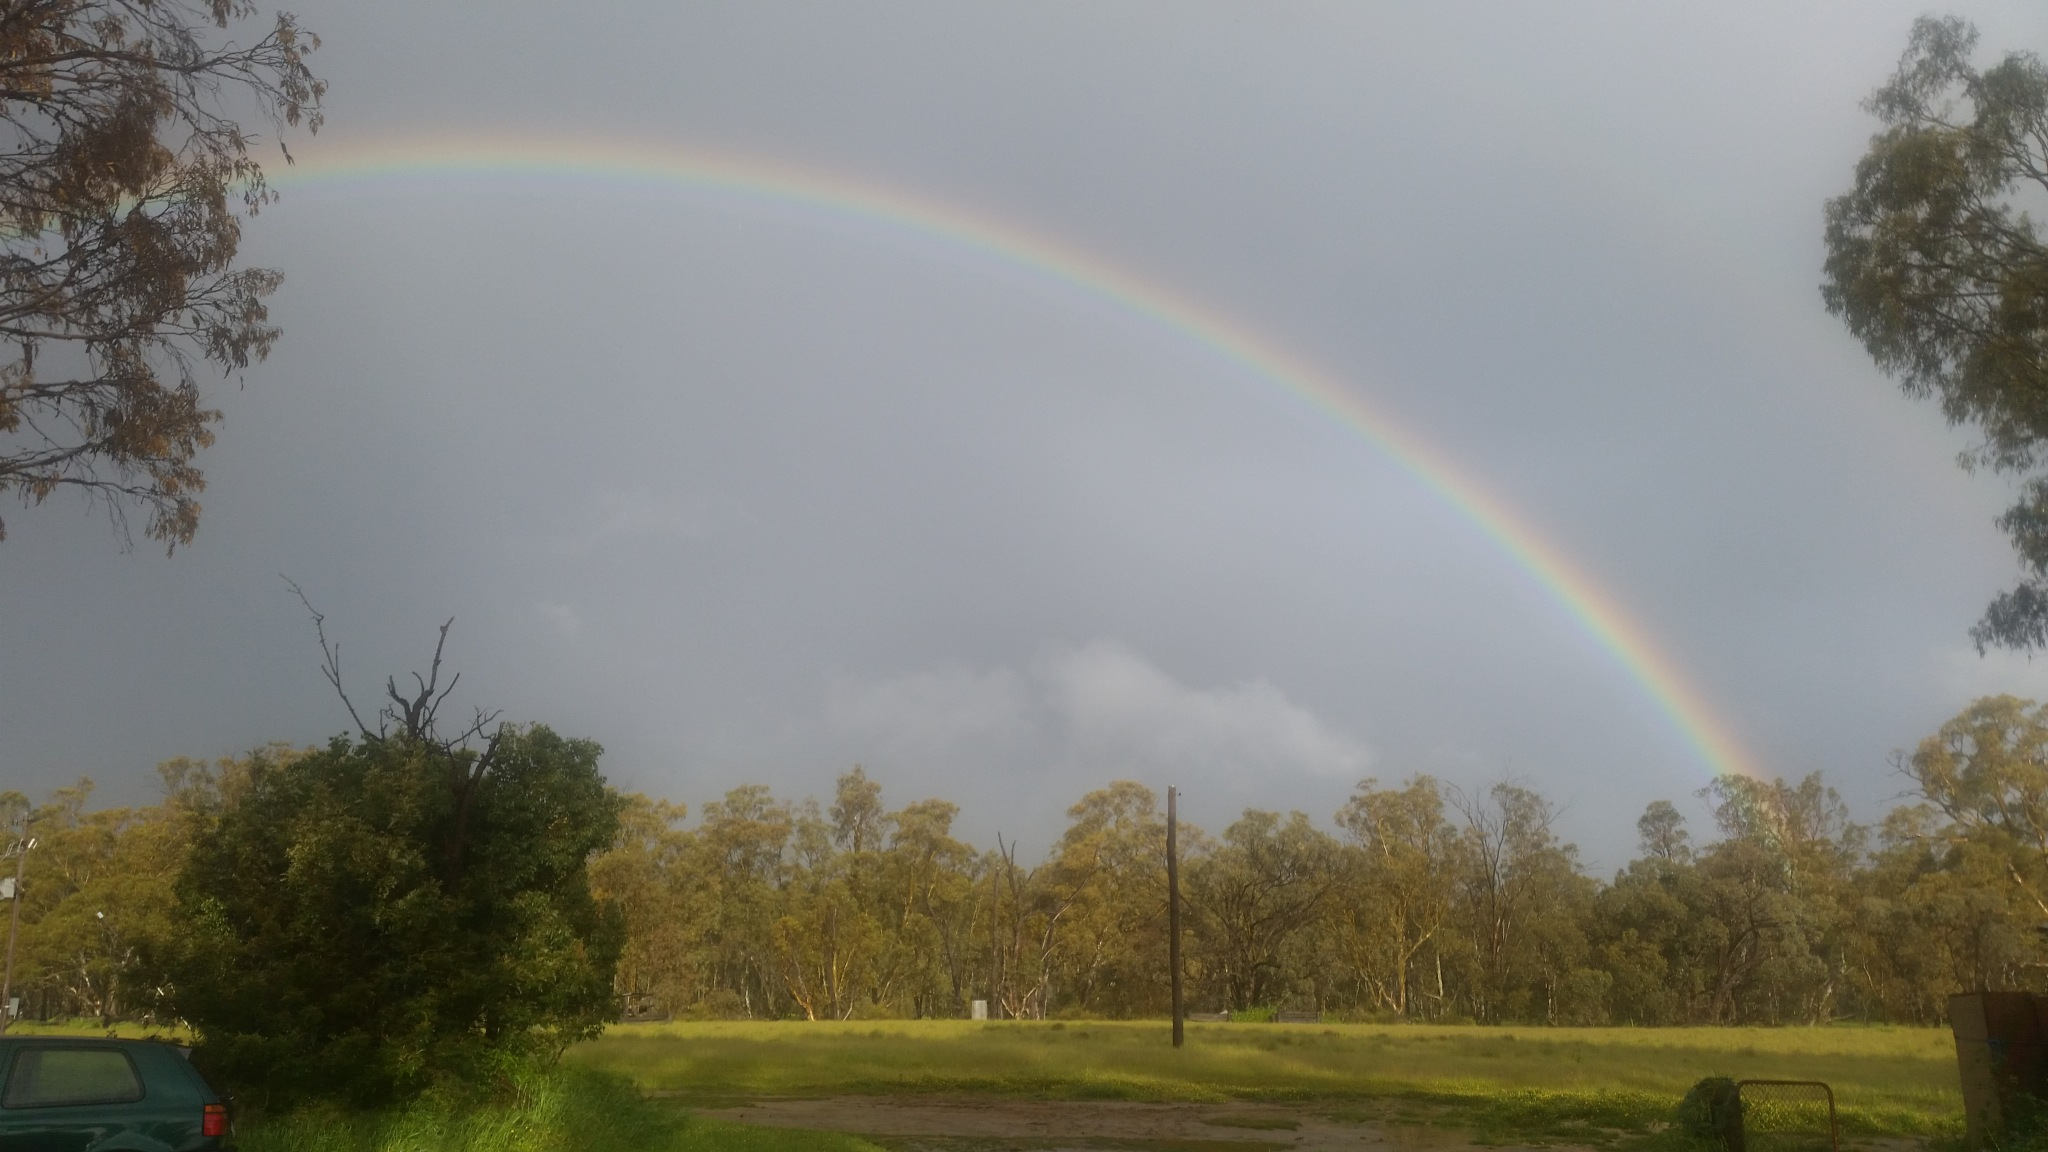 Over the Rainbow East barahm NSW  by Leica Ross